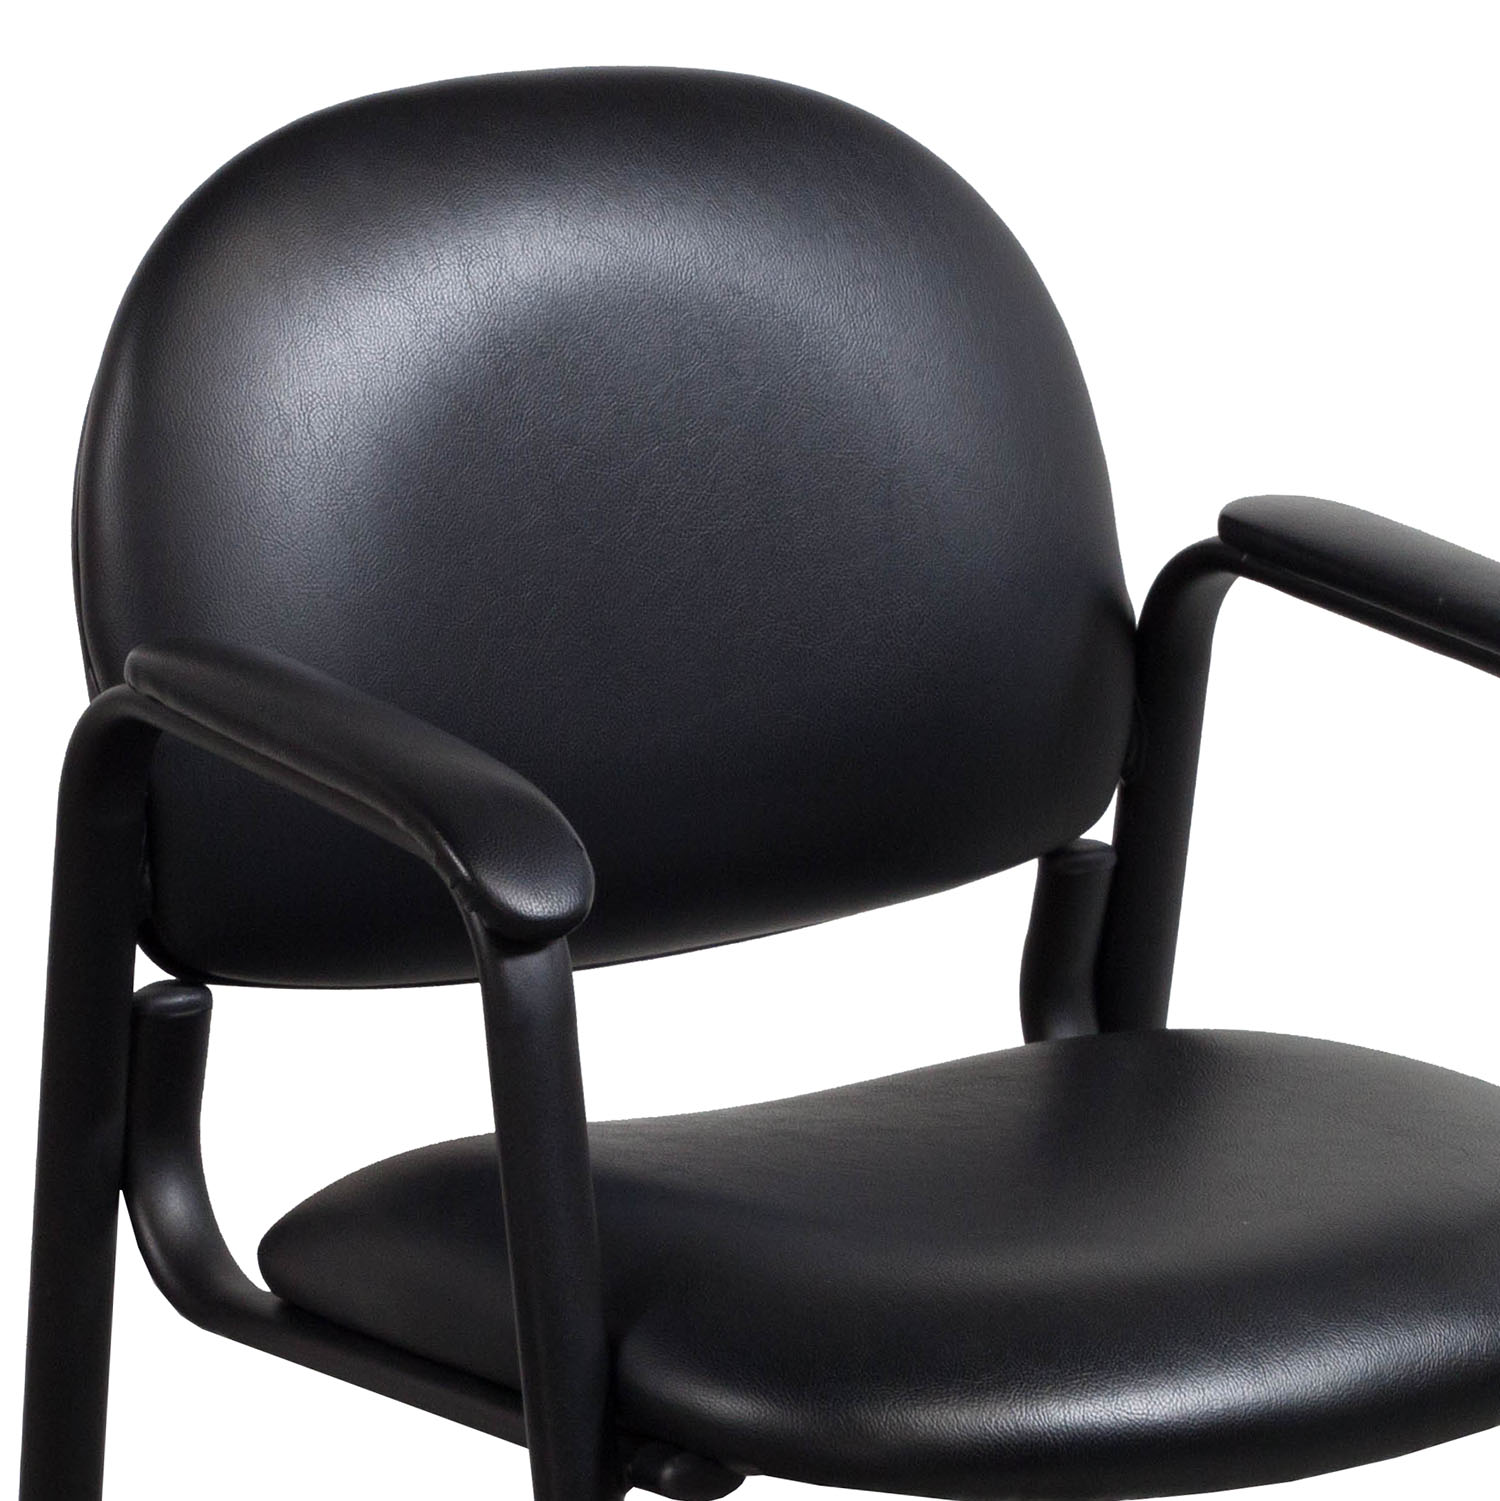 leather side chair ebay covers for weddings global used black national office